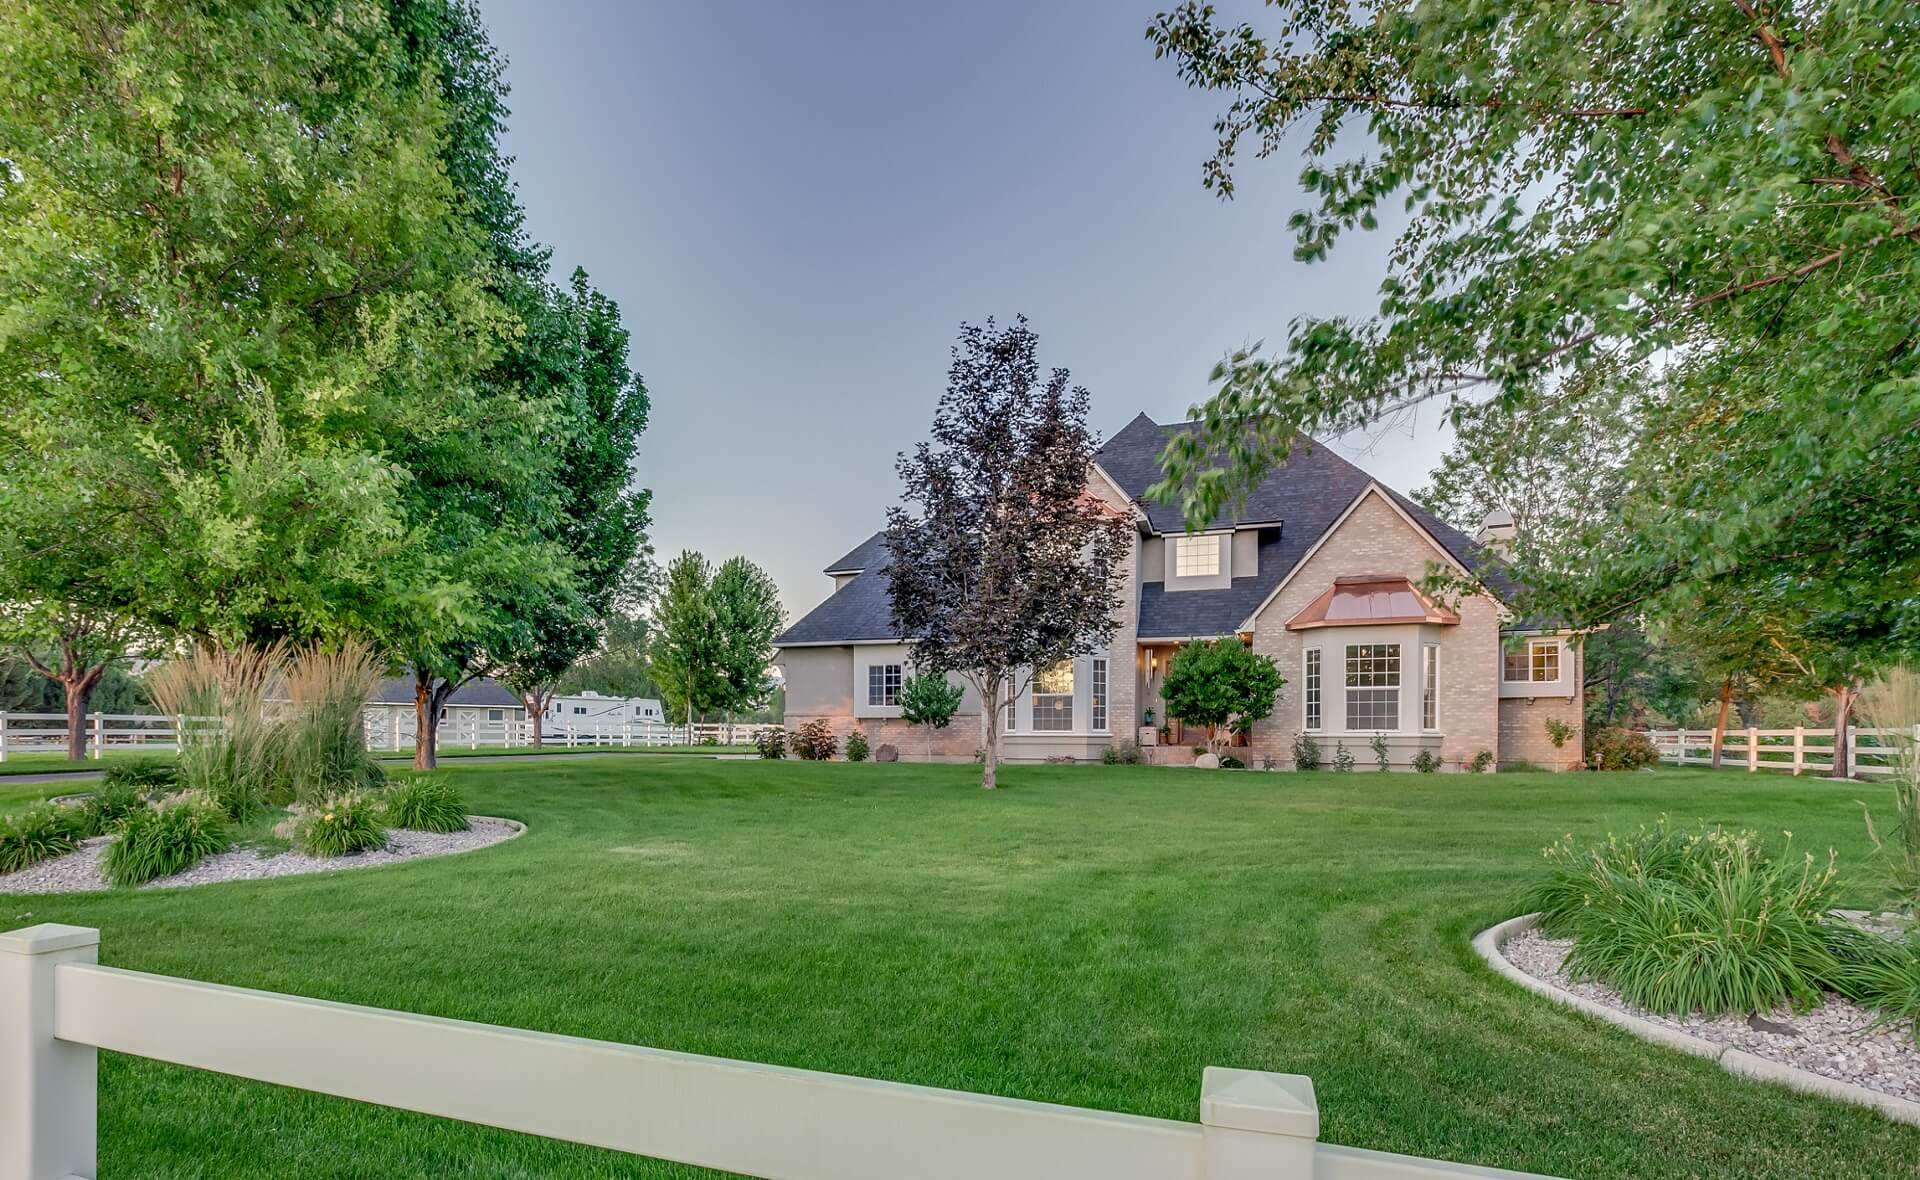 Saddleman Estate in Idaho front yard and white picket fence